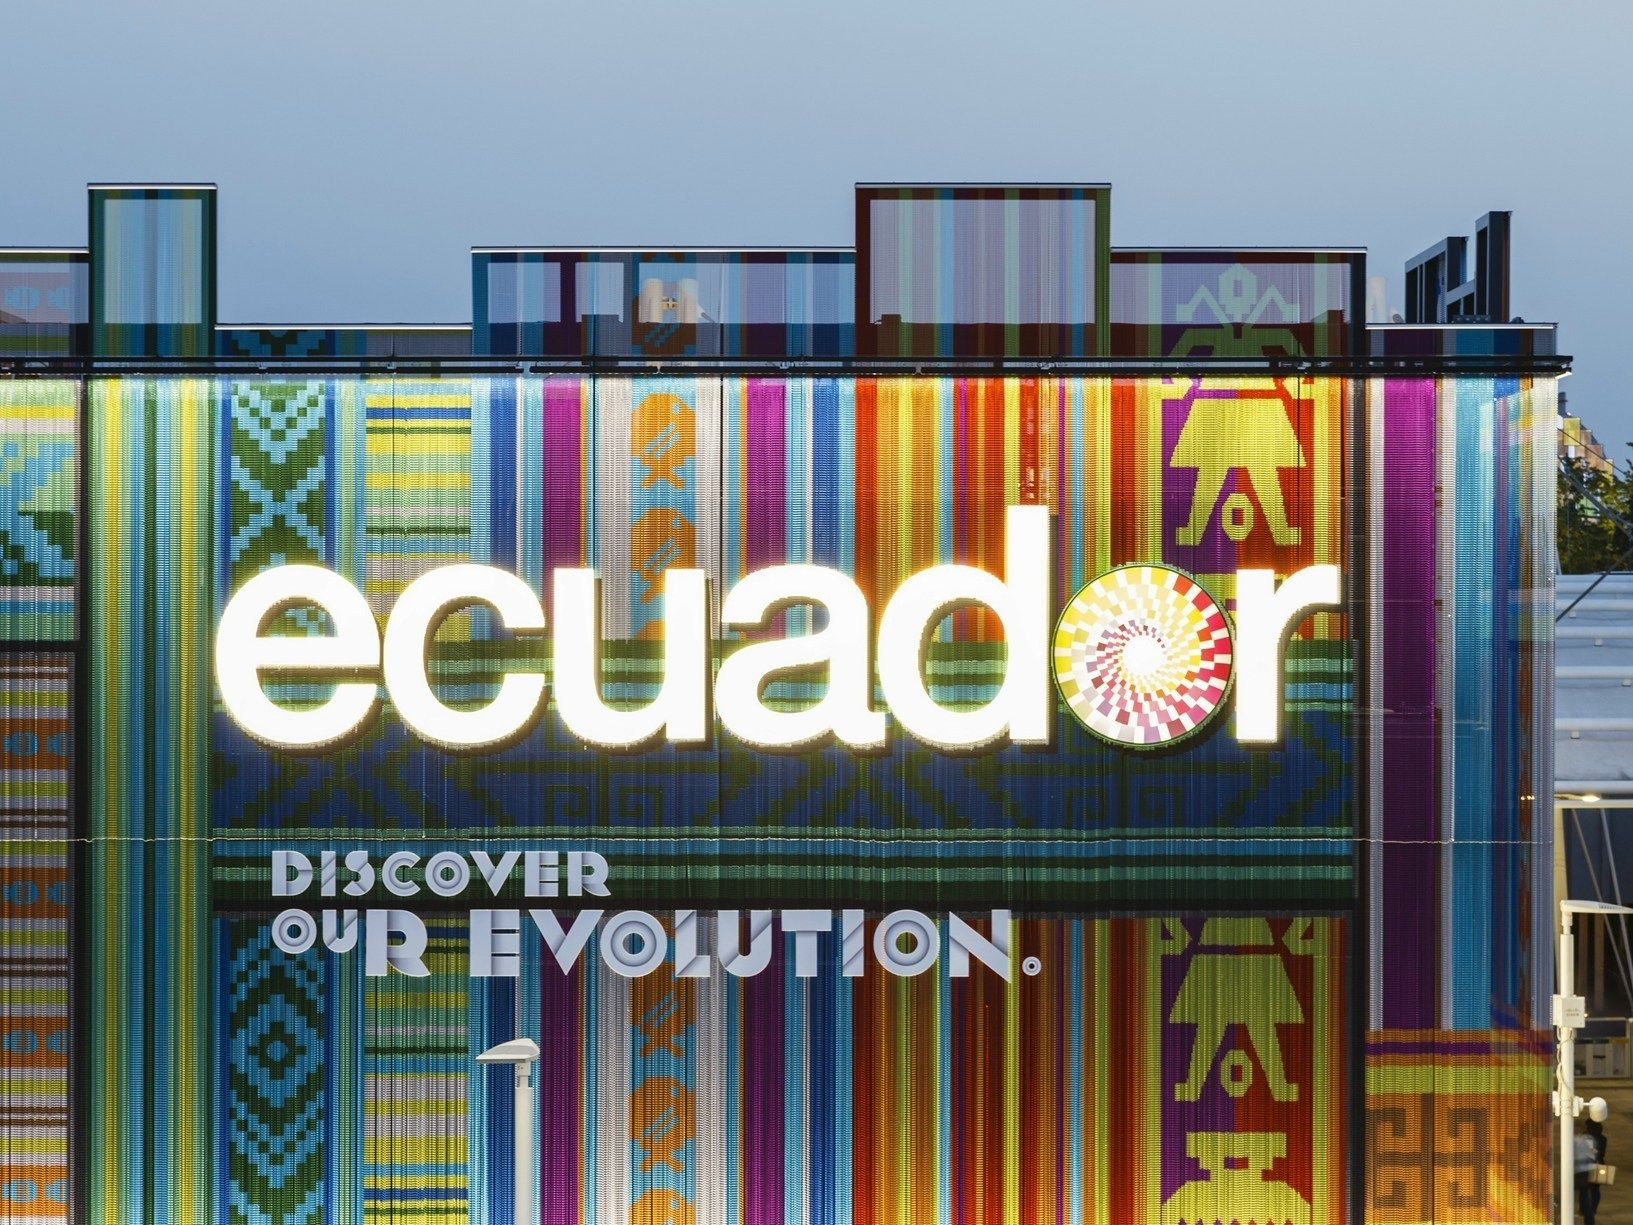 Aluminum Chain Curtains Inspired by the Ecuadorian Textile Tradition